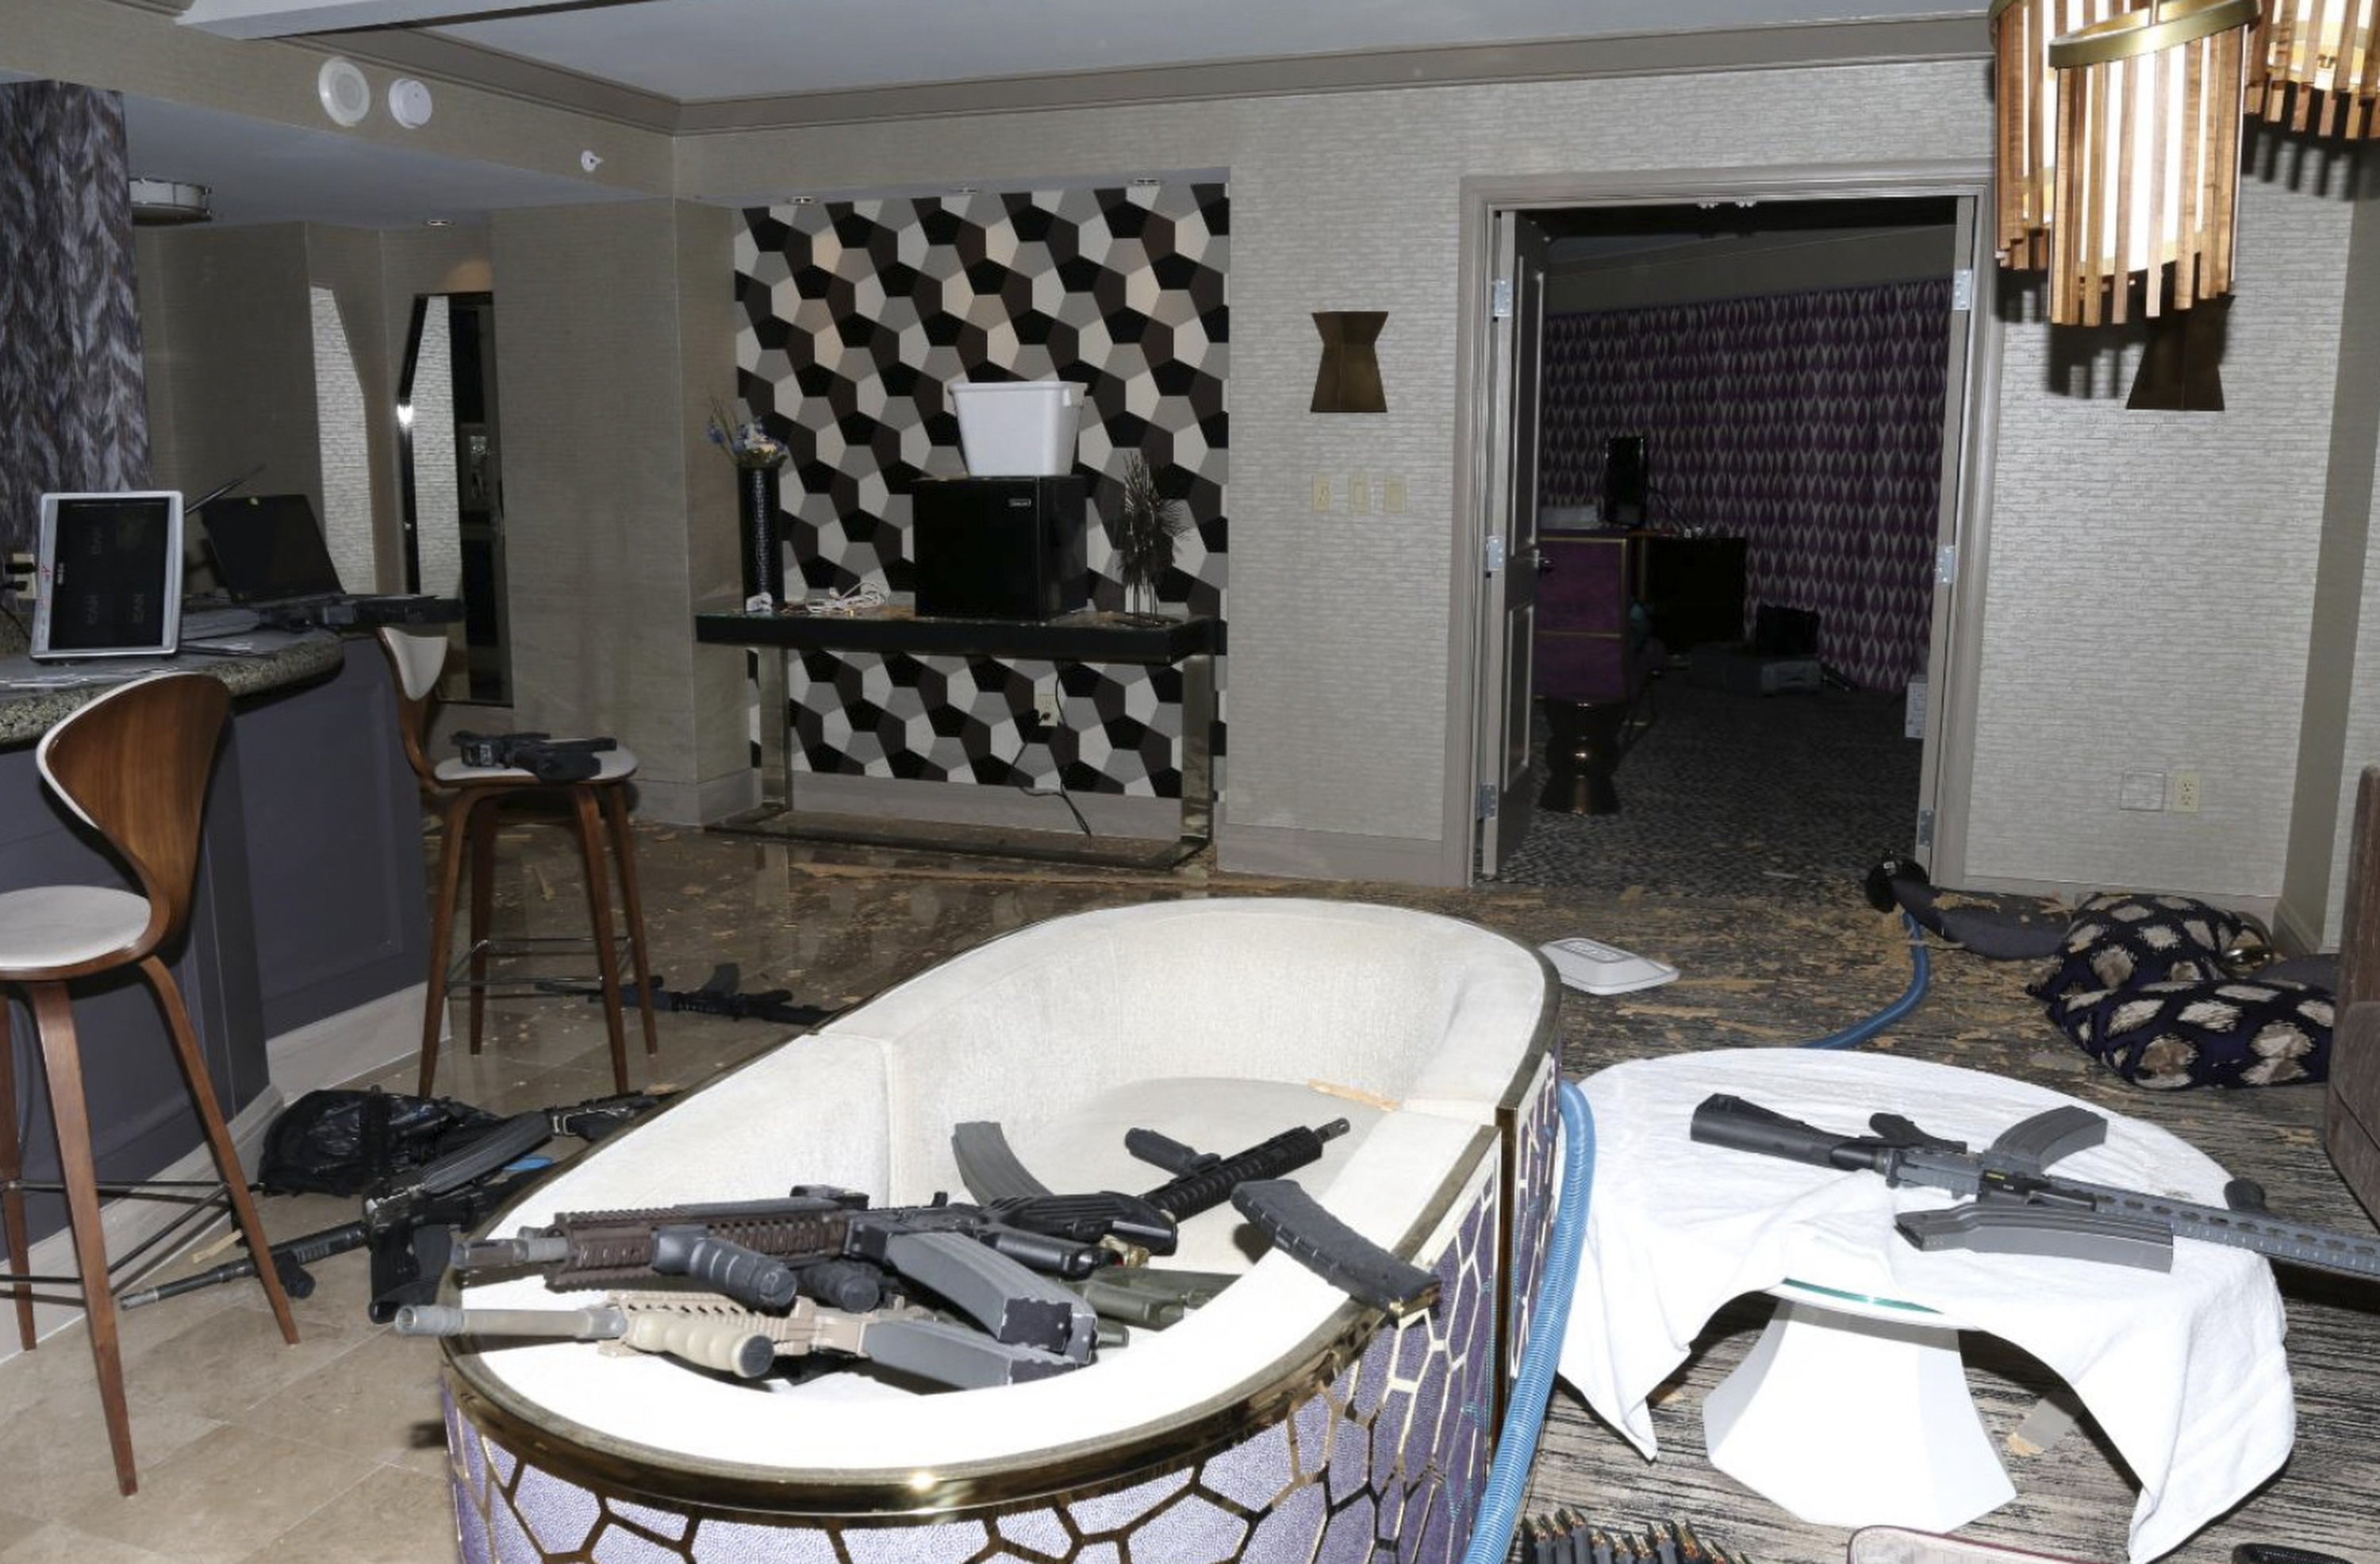 FILE - This Oct. 2017 file photo released by the Las Vegas Metropolitan Police Department Force Investigation Team Report shows the interior of Las Vegas shooter Stephen Paddock's 32nd floor room of the Mandalay Bay hotel. An autopsy found Las Vegas shooter Stephen Paddock had anti-anxiety drugs in his system but was not under the influence of them and was otherwise healthy. The report released Friday, Feb. 9, 2018, showed signs of benzodiazepines in Paddock's system but said because the substances were found in his urine and not his blood, Paddock wasn't under the influence of the medication. It said he was overweight but otherwise healthy. Paddock killed 58 people and injured more than 800 others during the Oct. 1 massacre. (Las Vegas Metropolitan Police Department via AP, File)